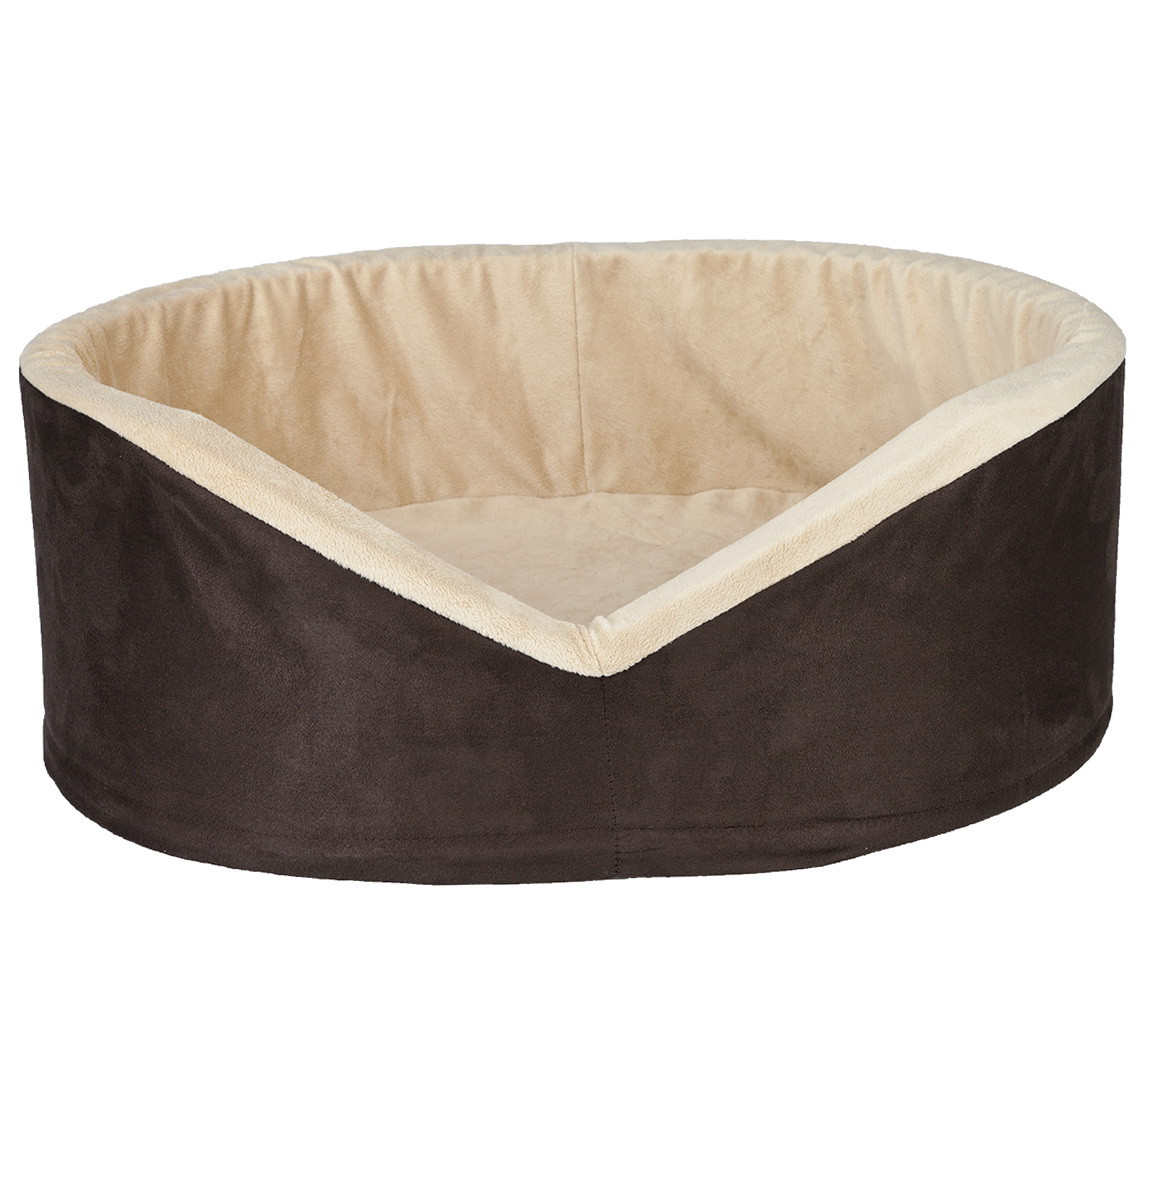 Heated Pet Beds Petsmart